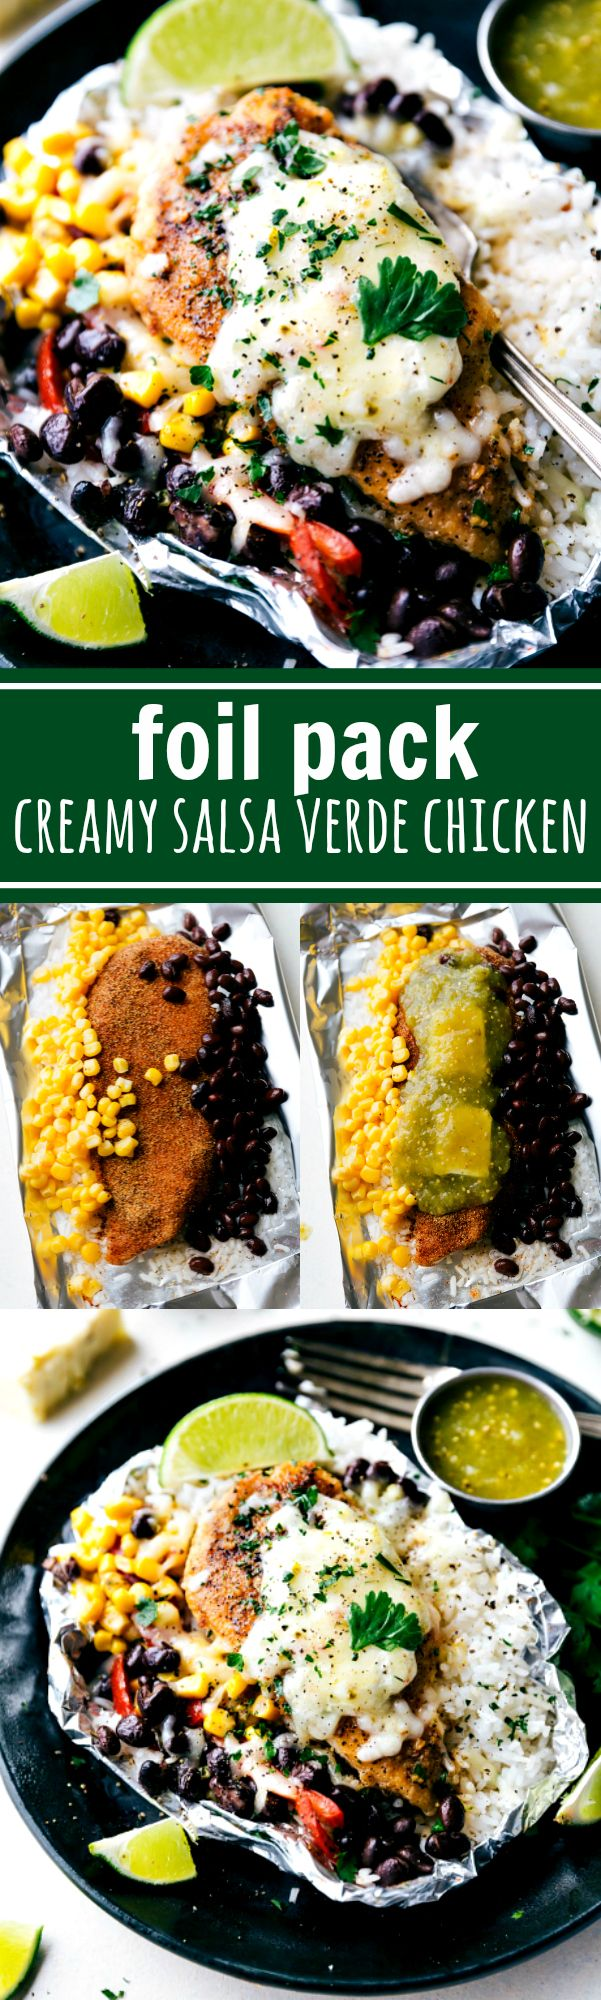 EASY FOIL PACKET Creamy salsa verde chicken with rice and veggies all cooked at once in a foil packet! No need to pre-cook the rice or chicken. This dish takes no more than 10 minutes to assemble and is bursting with delicious Mexican flavor! Also, make these packets into TACOS for another quick and easy dinner. Recipe from: chelseasmessyapron.com